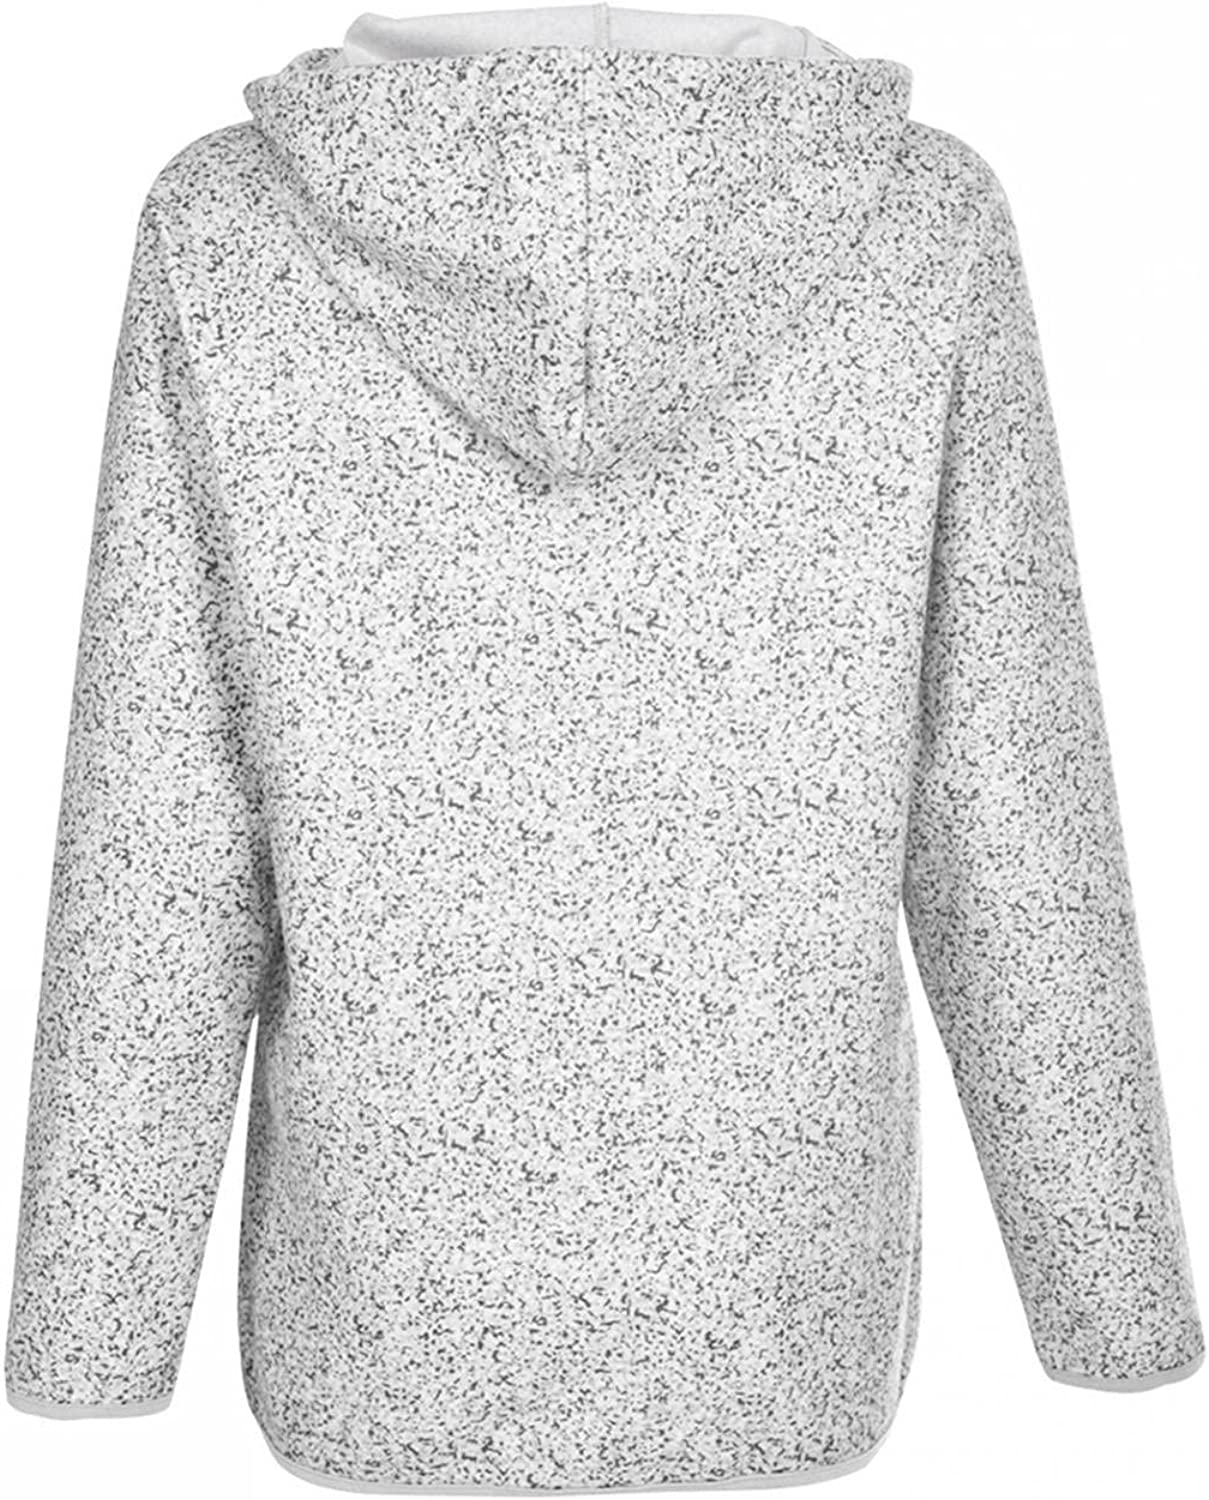 Toeava Hoodies for Women Sweatshirts Casual 1/4 Zip Up Drawstring Hooded Pullover Solid Long Sleeve Tops with Pocket